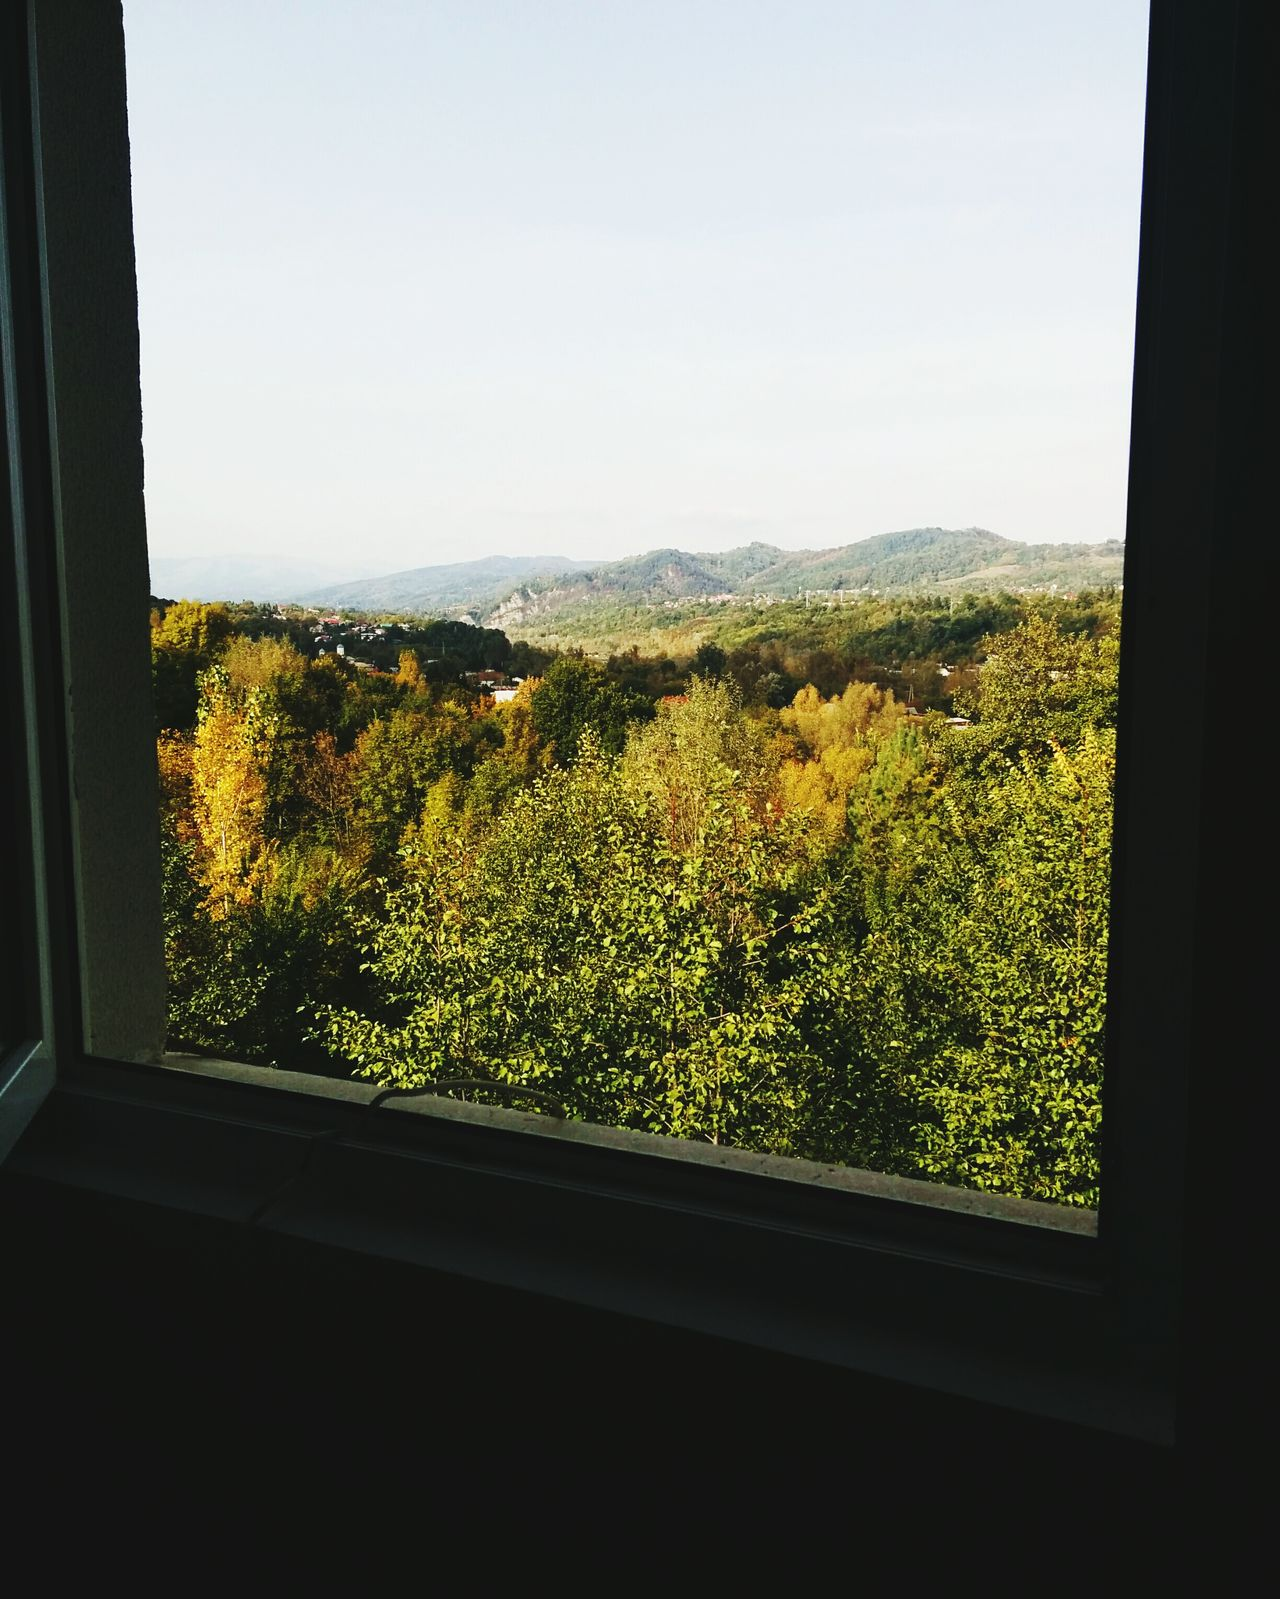 Morning view Window Looking Through Window Day Nature Breaza Romanian Lands Energy Indoors  Glass - Material Window Transparent Tree Home Interior Vehicle Interior Looking Through Window Landscape Sky Window Sill Window Frame Day Green Color Branch Field Agriculture Nature First Eyeem Photo